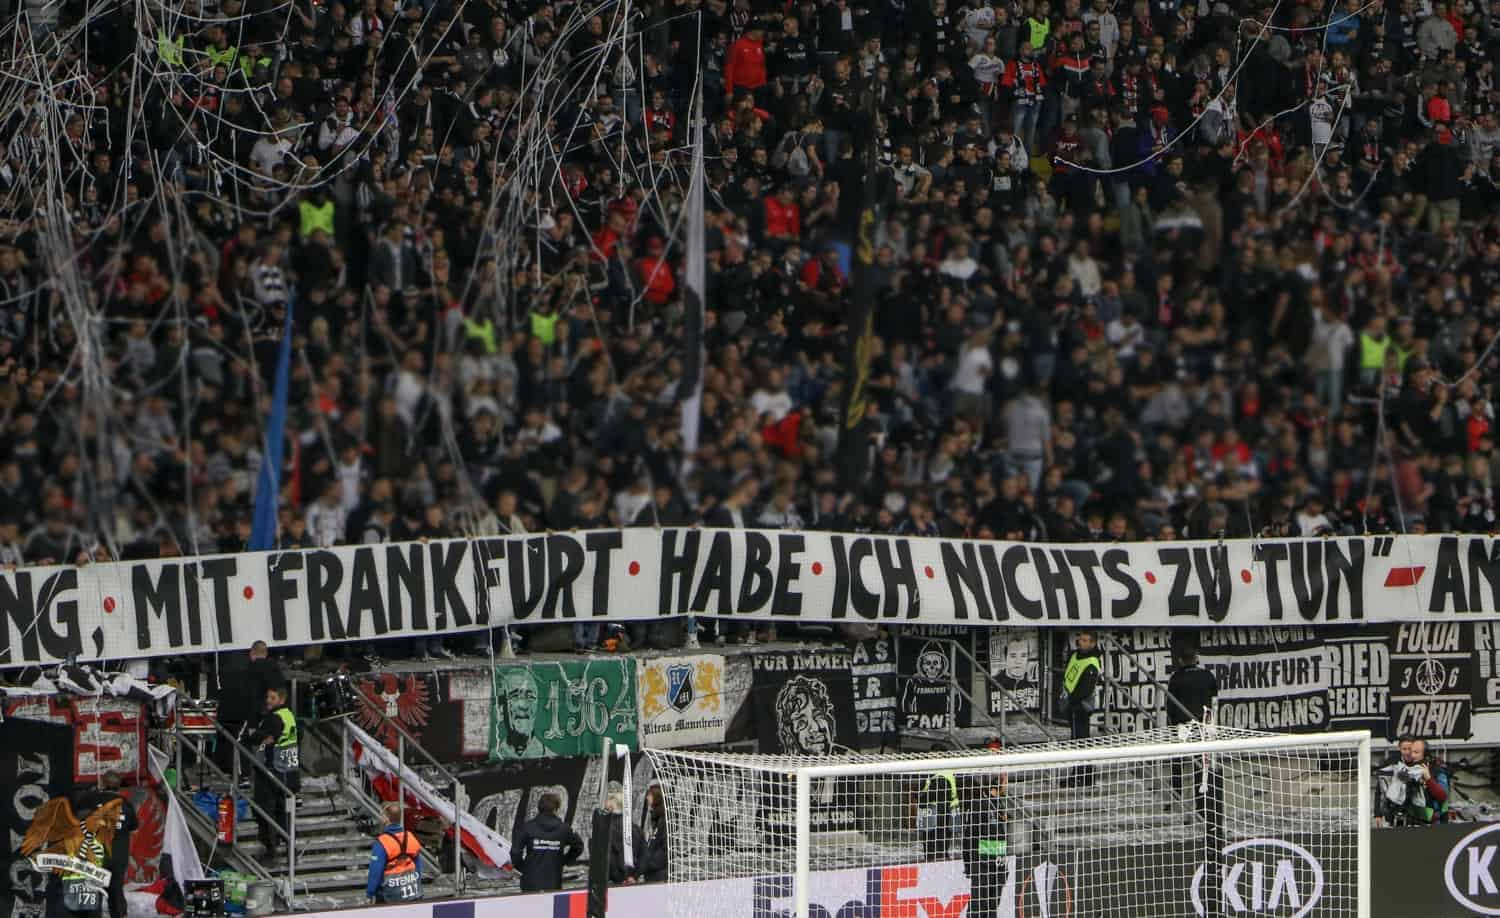 19-20-europaleague-eintracht-frankfurt-arsenal-london-26